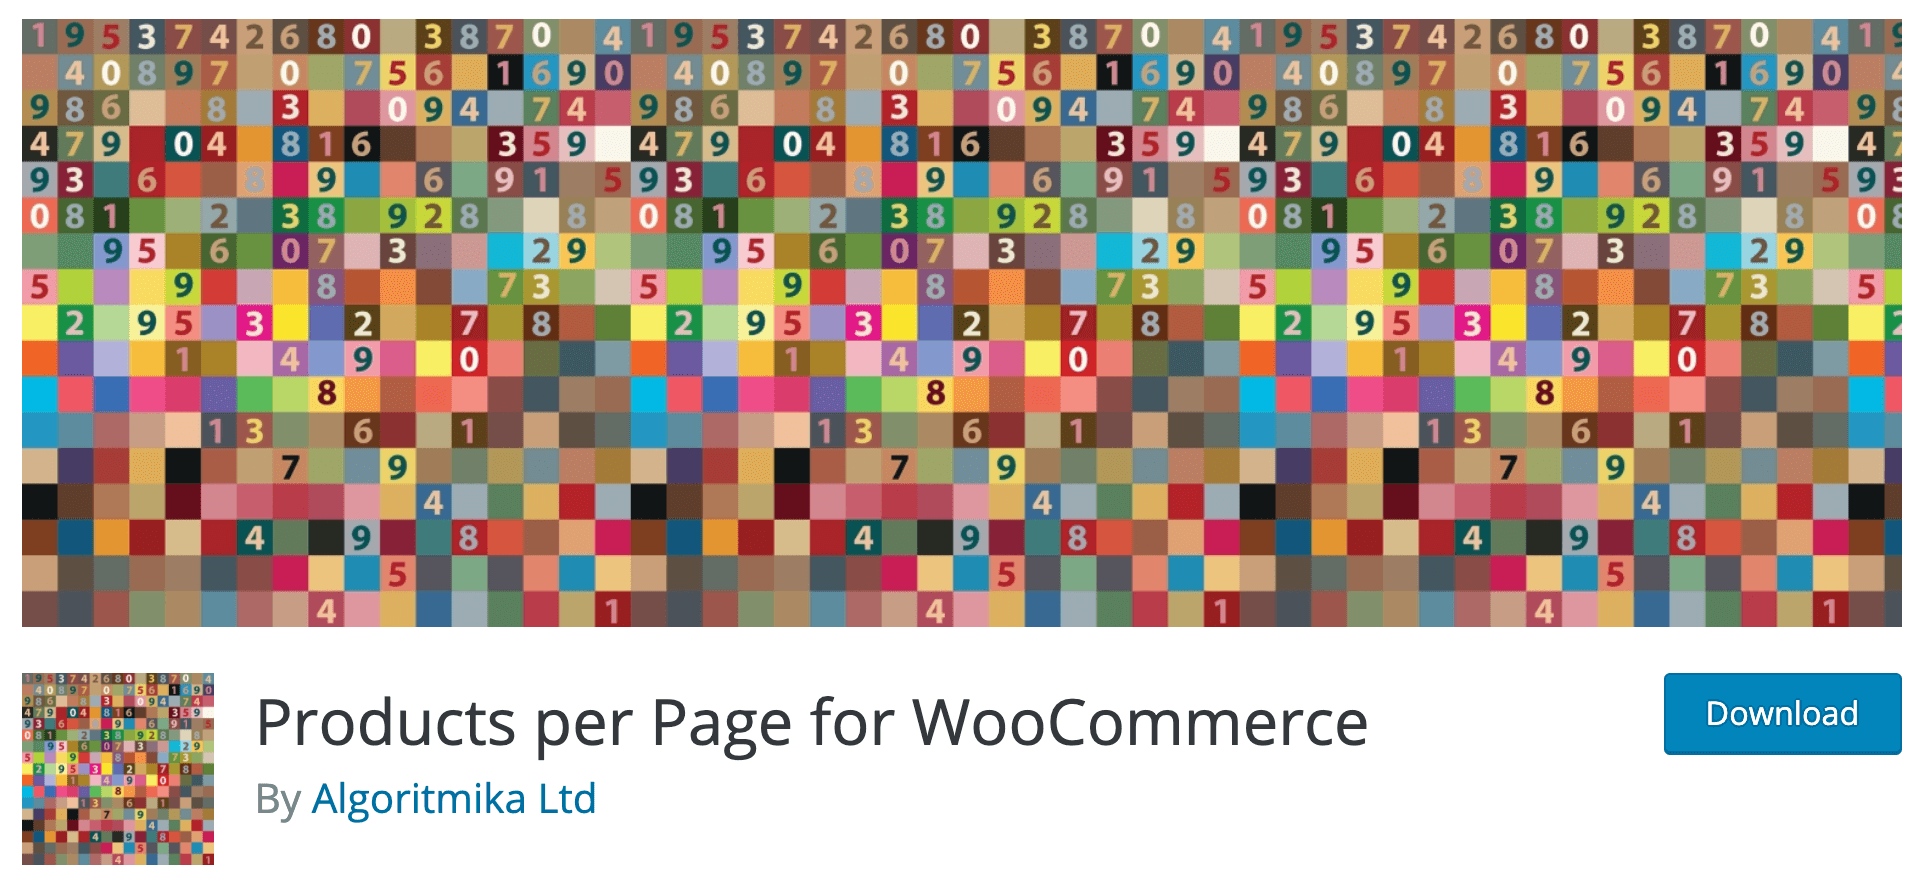 Products per Page for WooCommerce